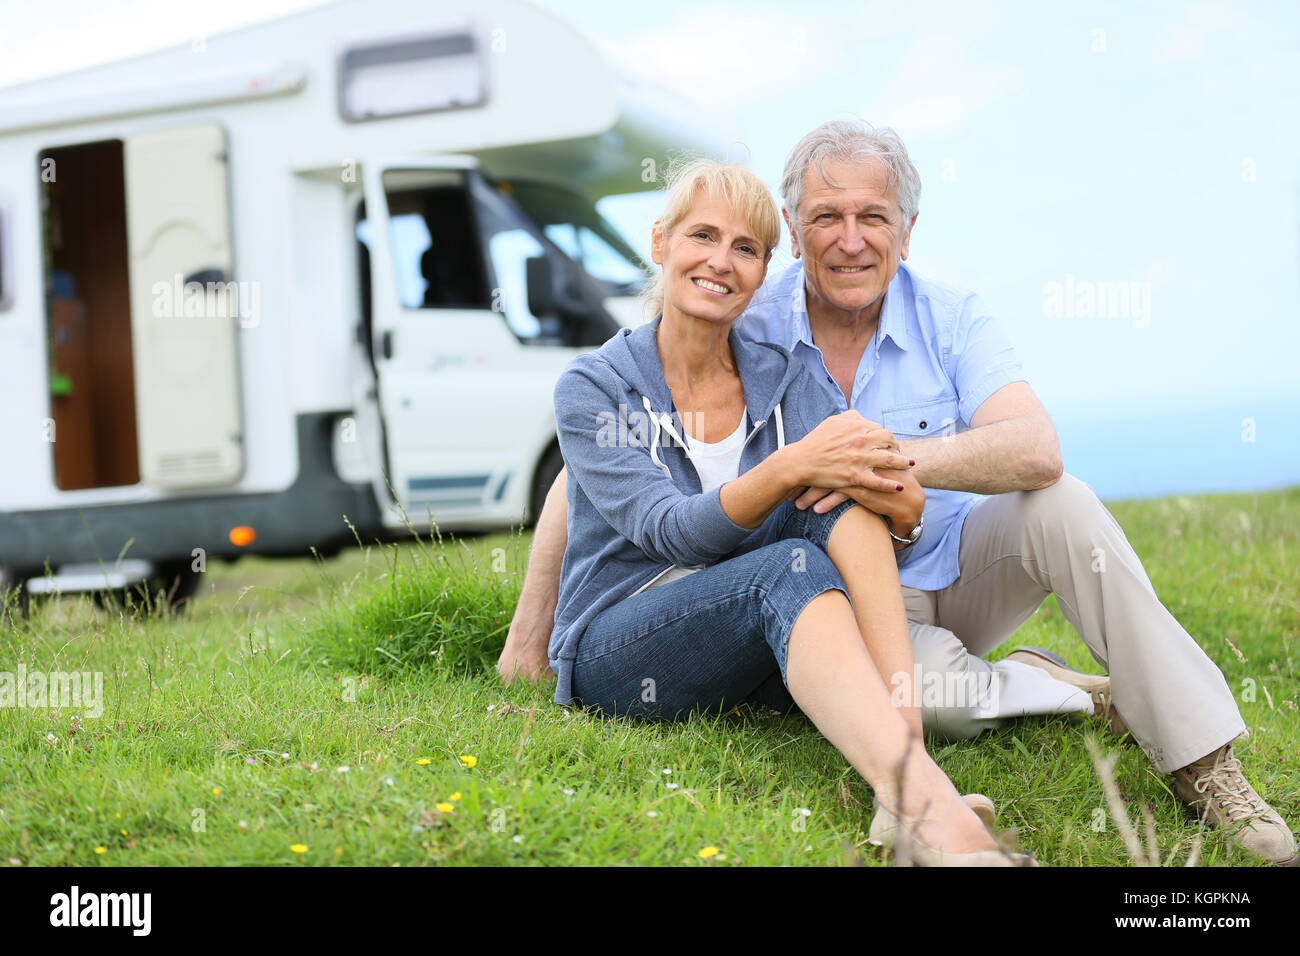 Happy senior couple sitting in grass, camper in background - Stock Image